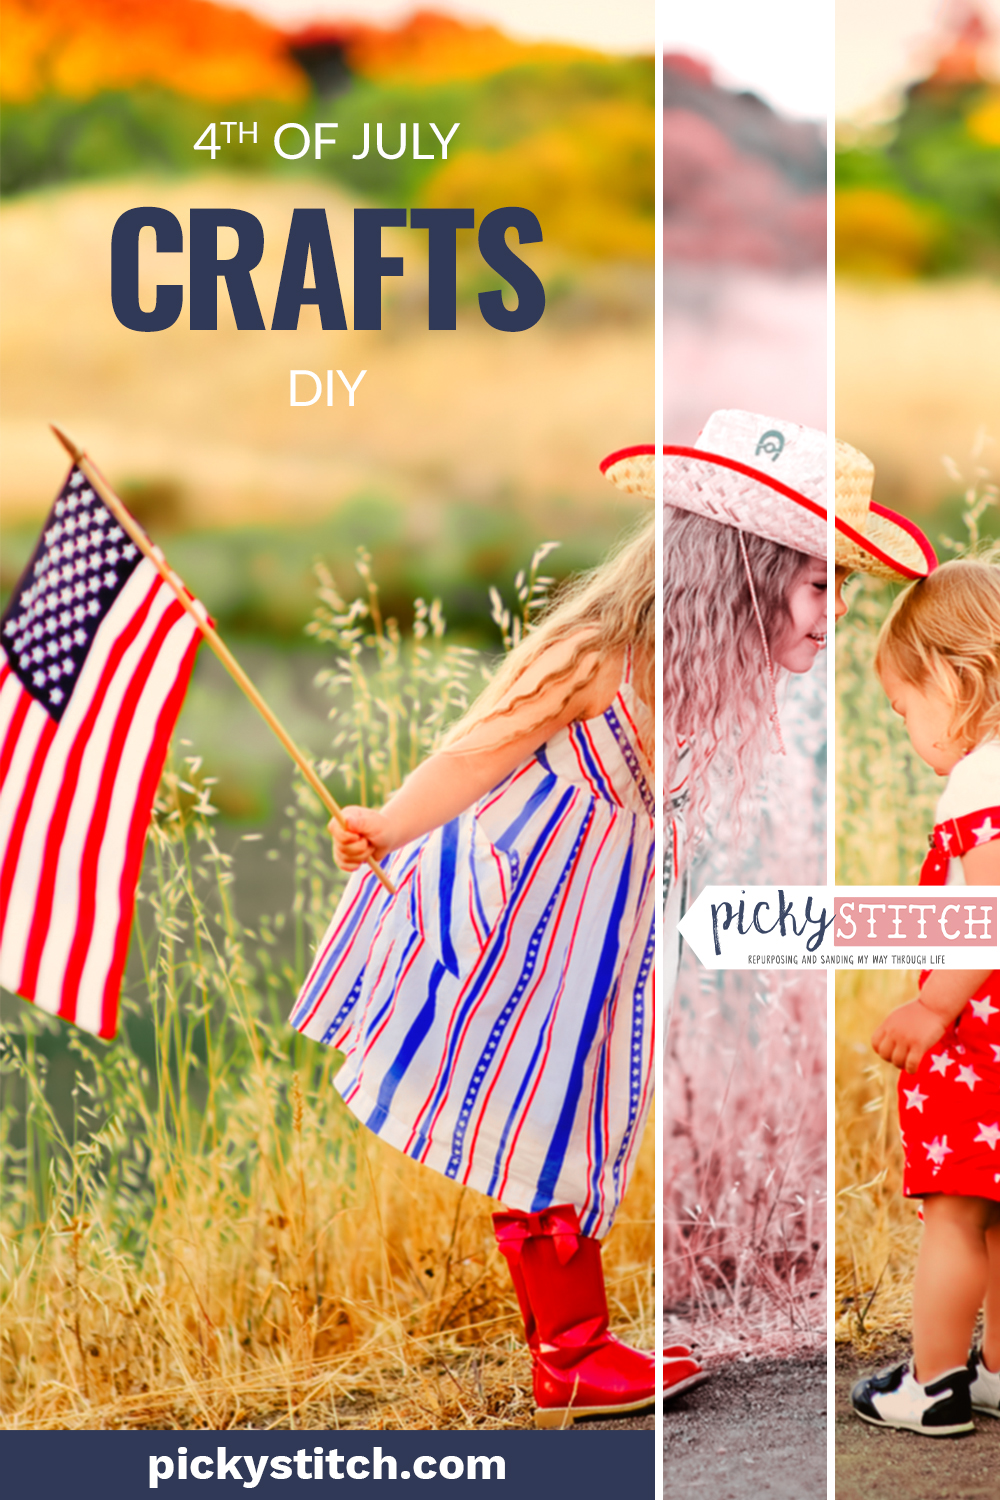 4th Of July Crafts Diy American Flag On Corrugated Metal Picky Stitch